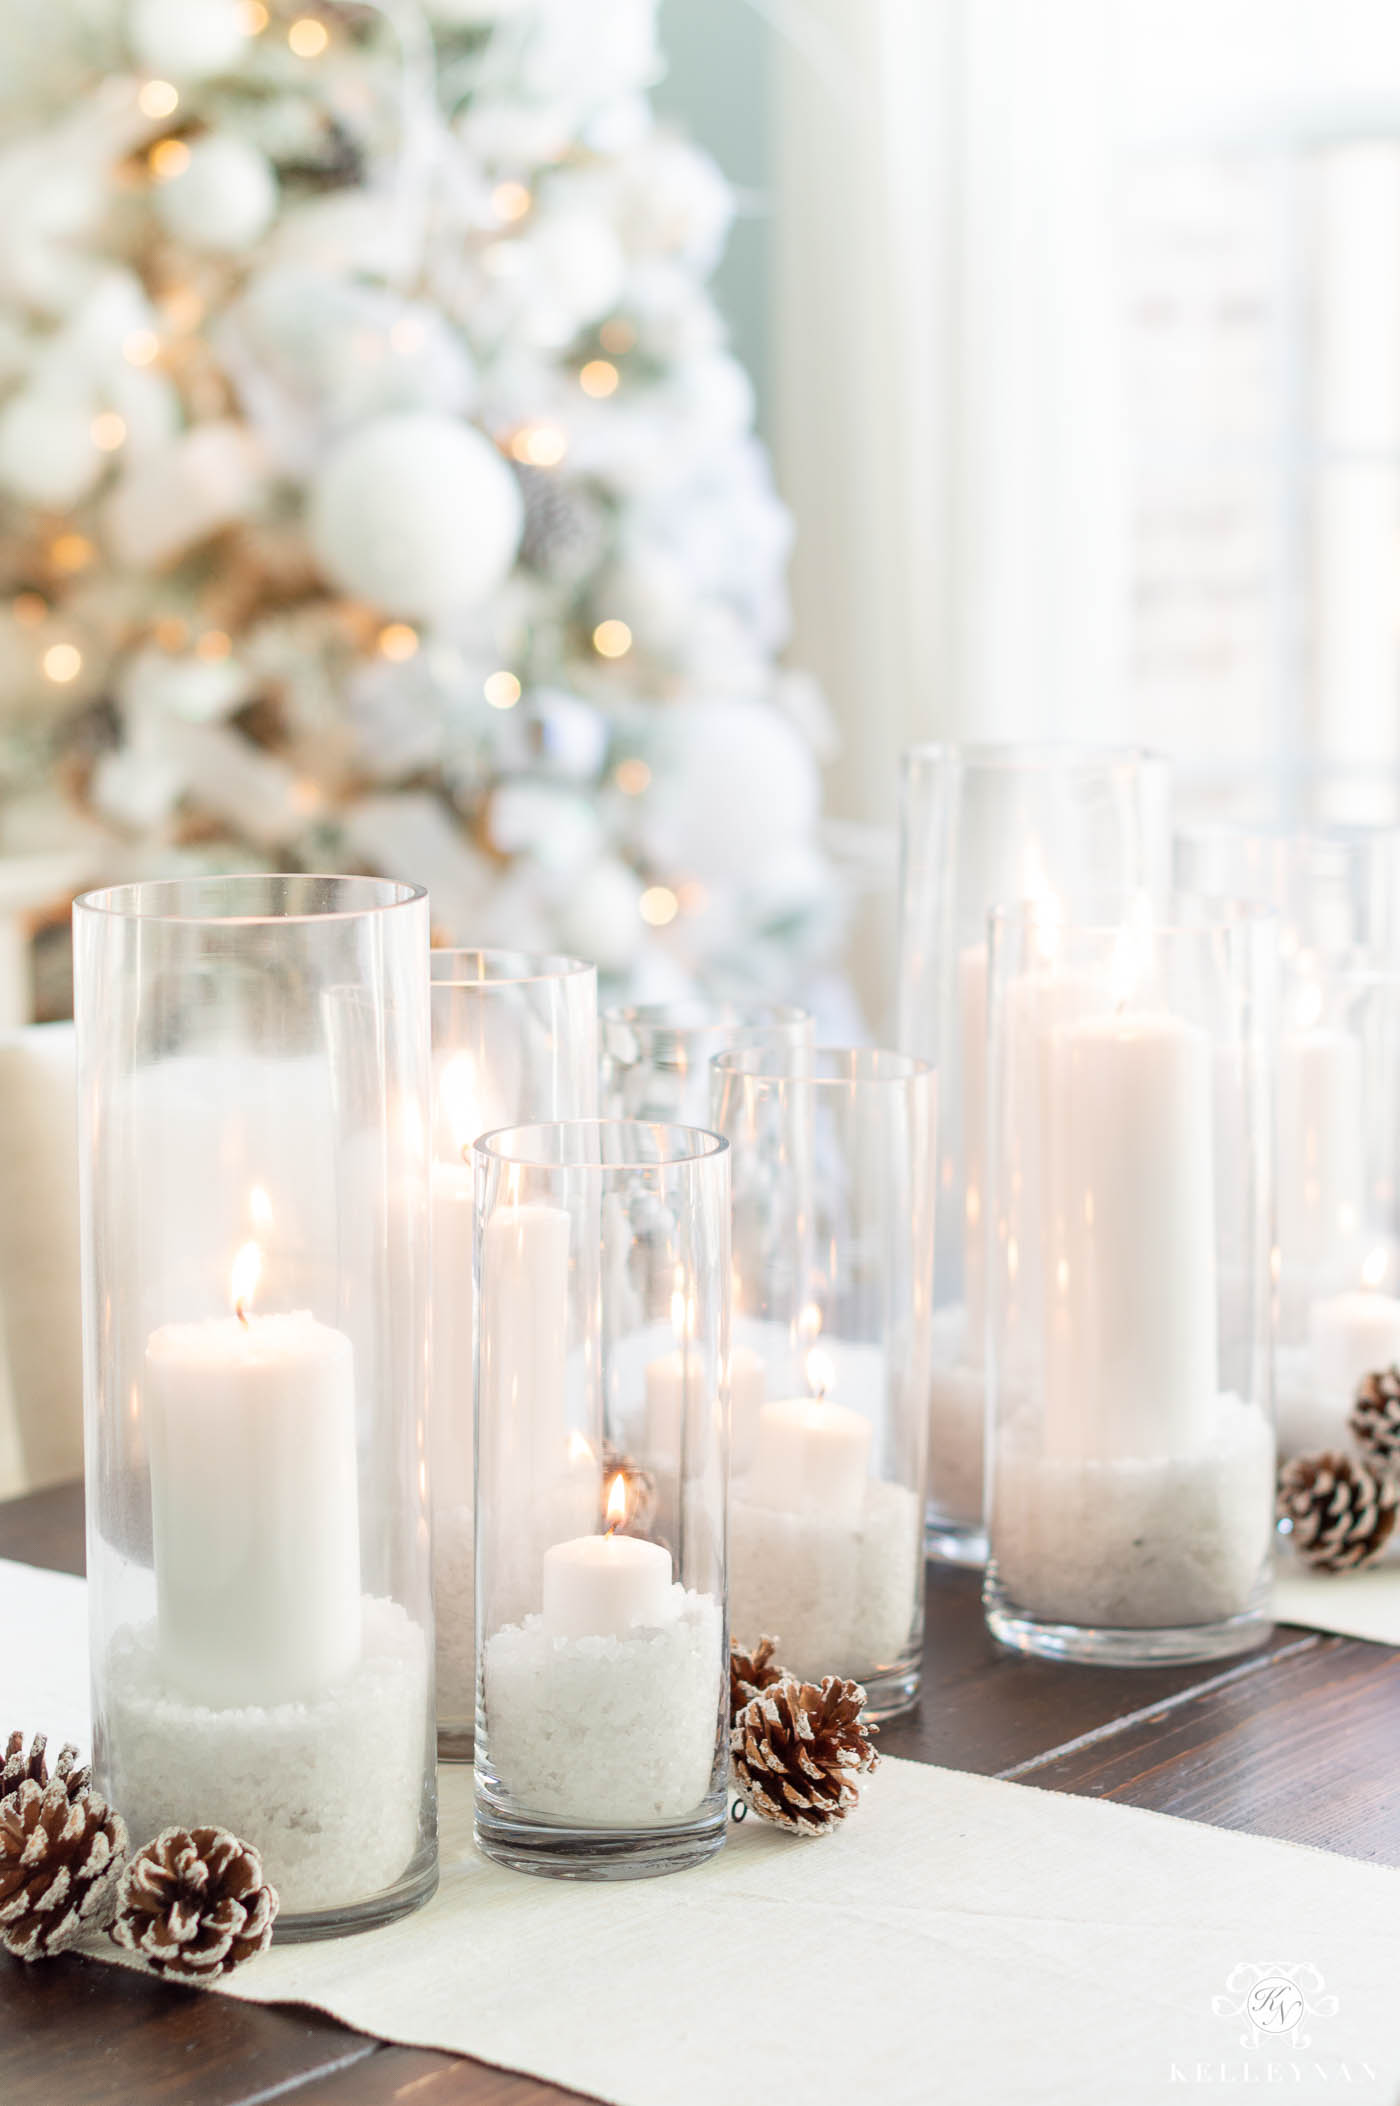 Snowy Christmas Dining Room Table Centerpiece and Christmas Decorations